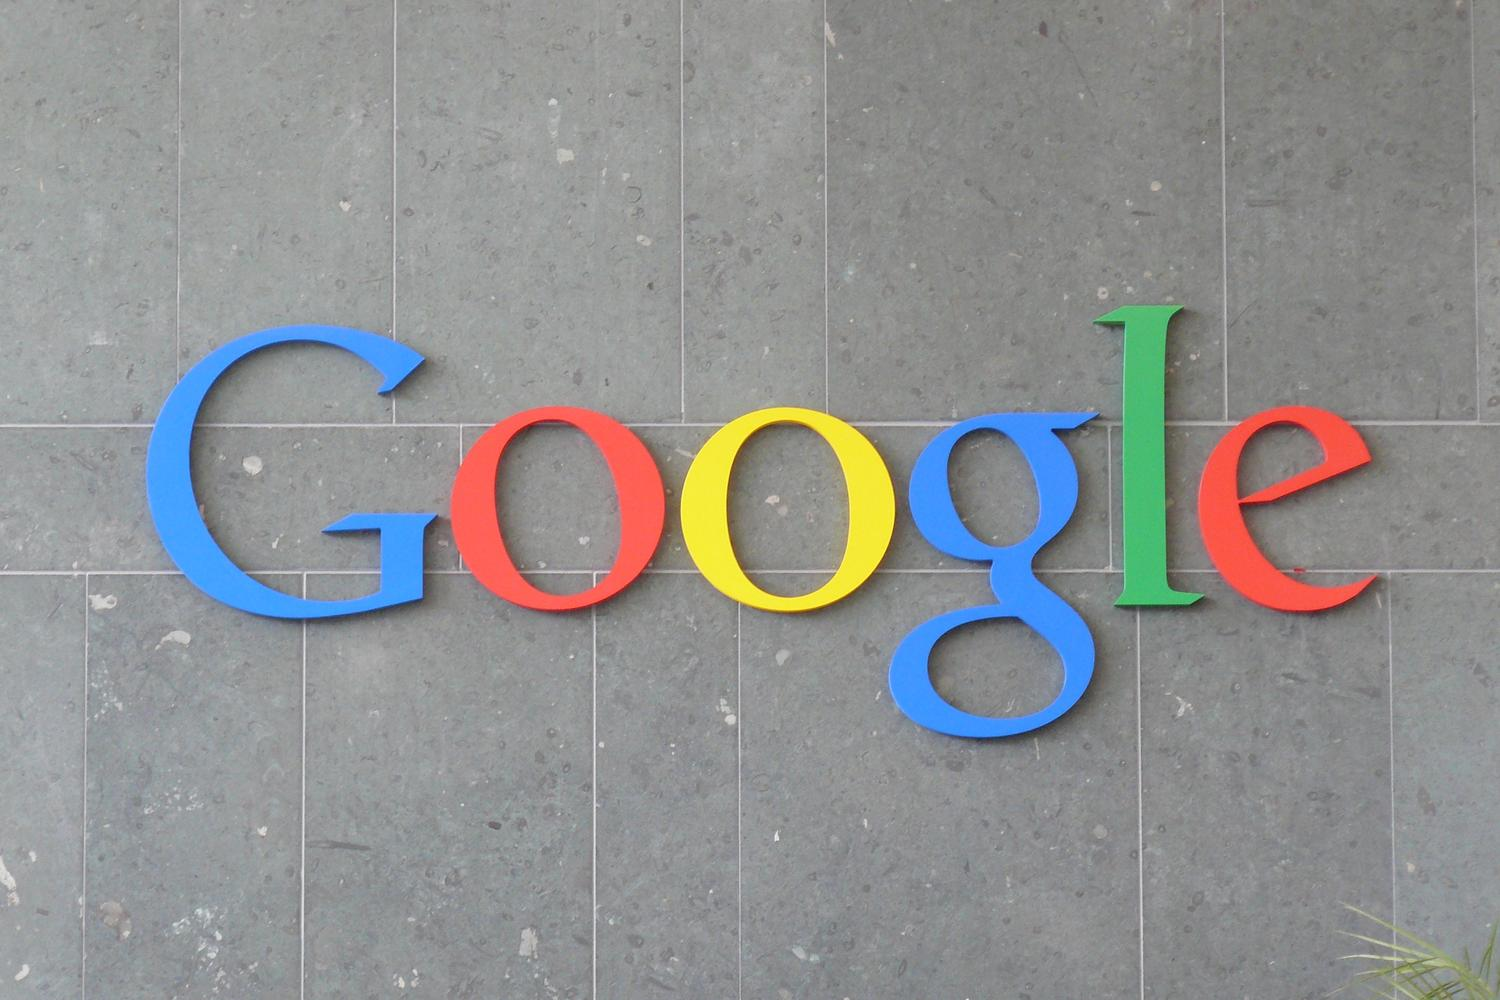 Google+ Finally Dumps Its Real Name Policy